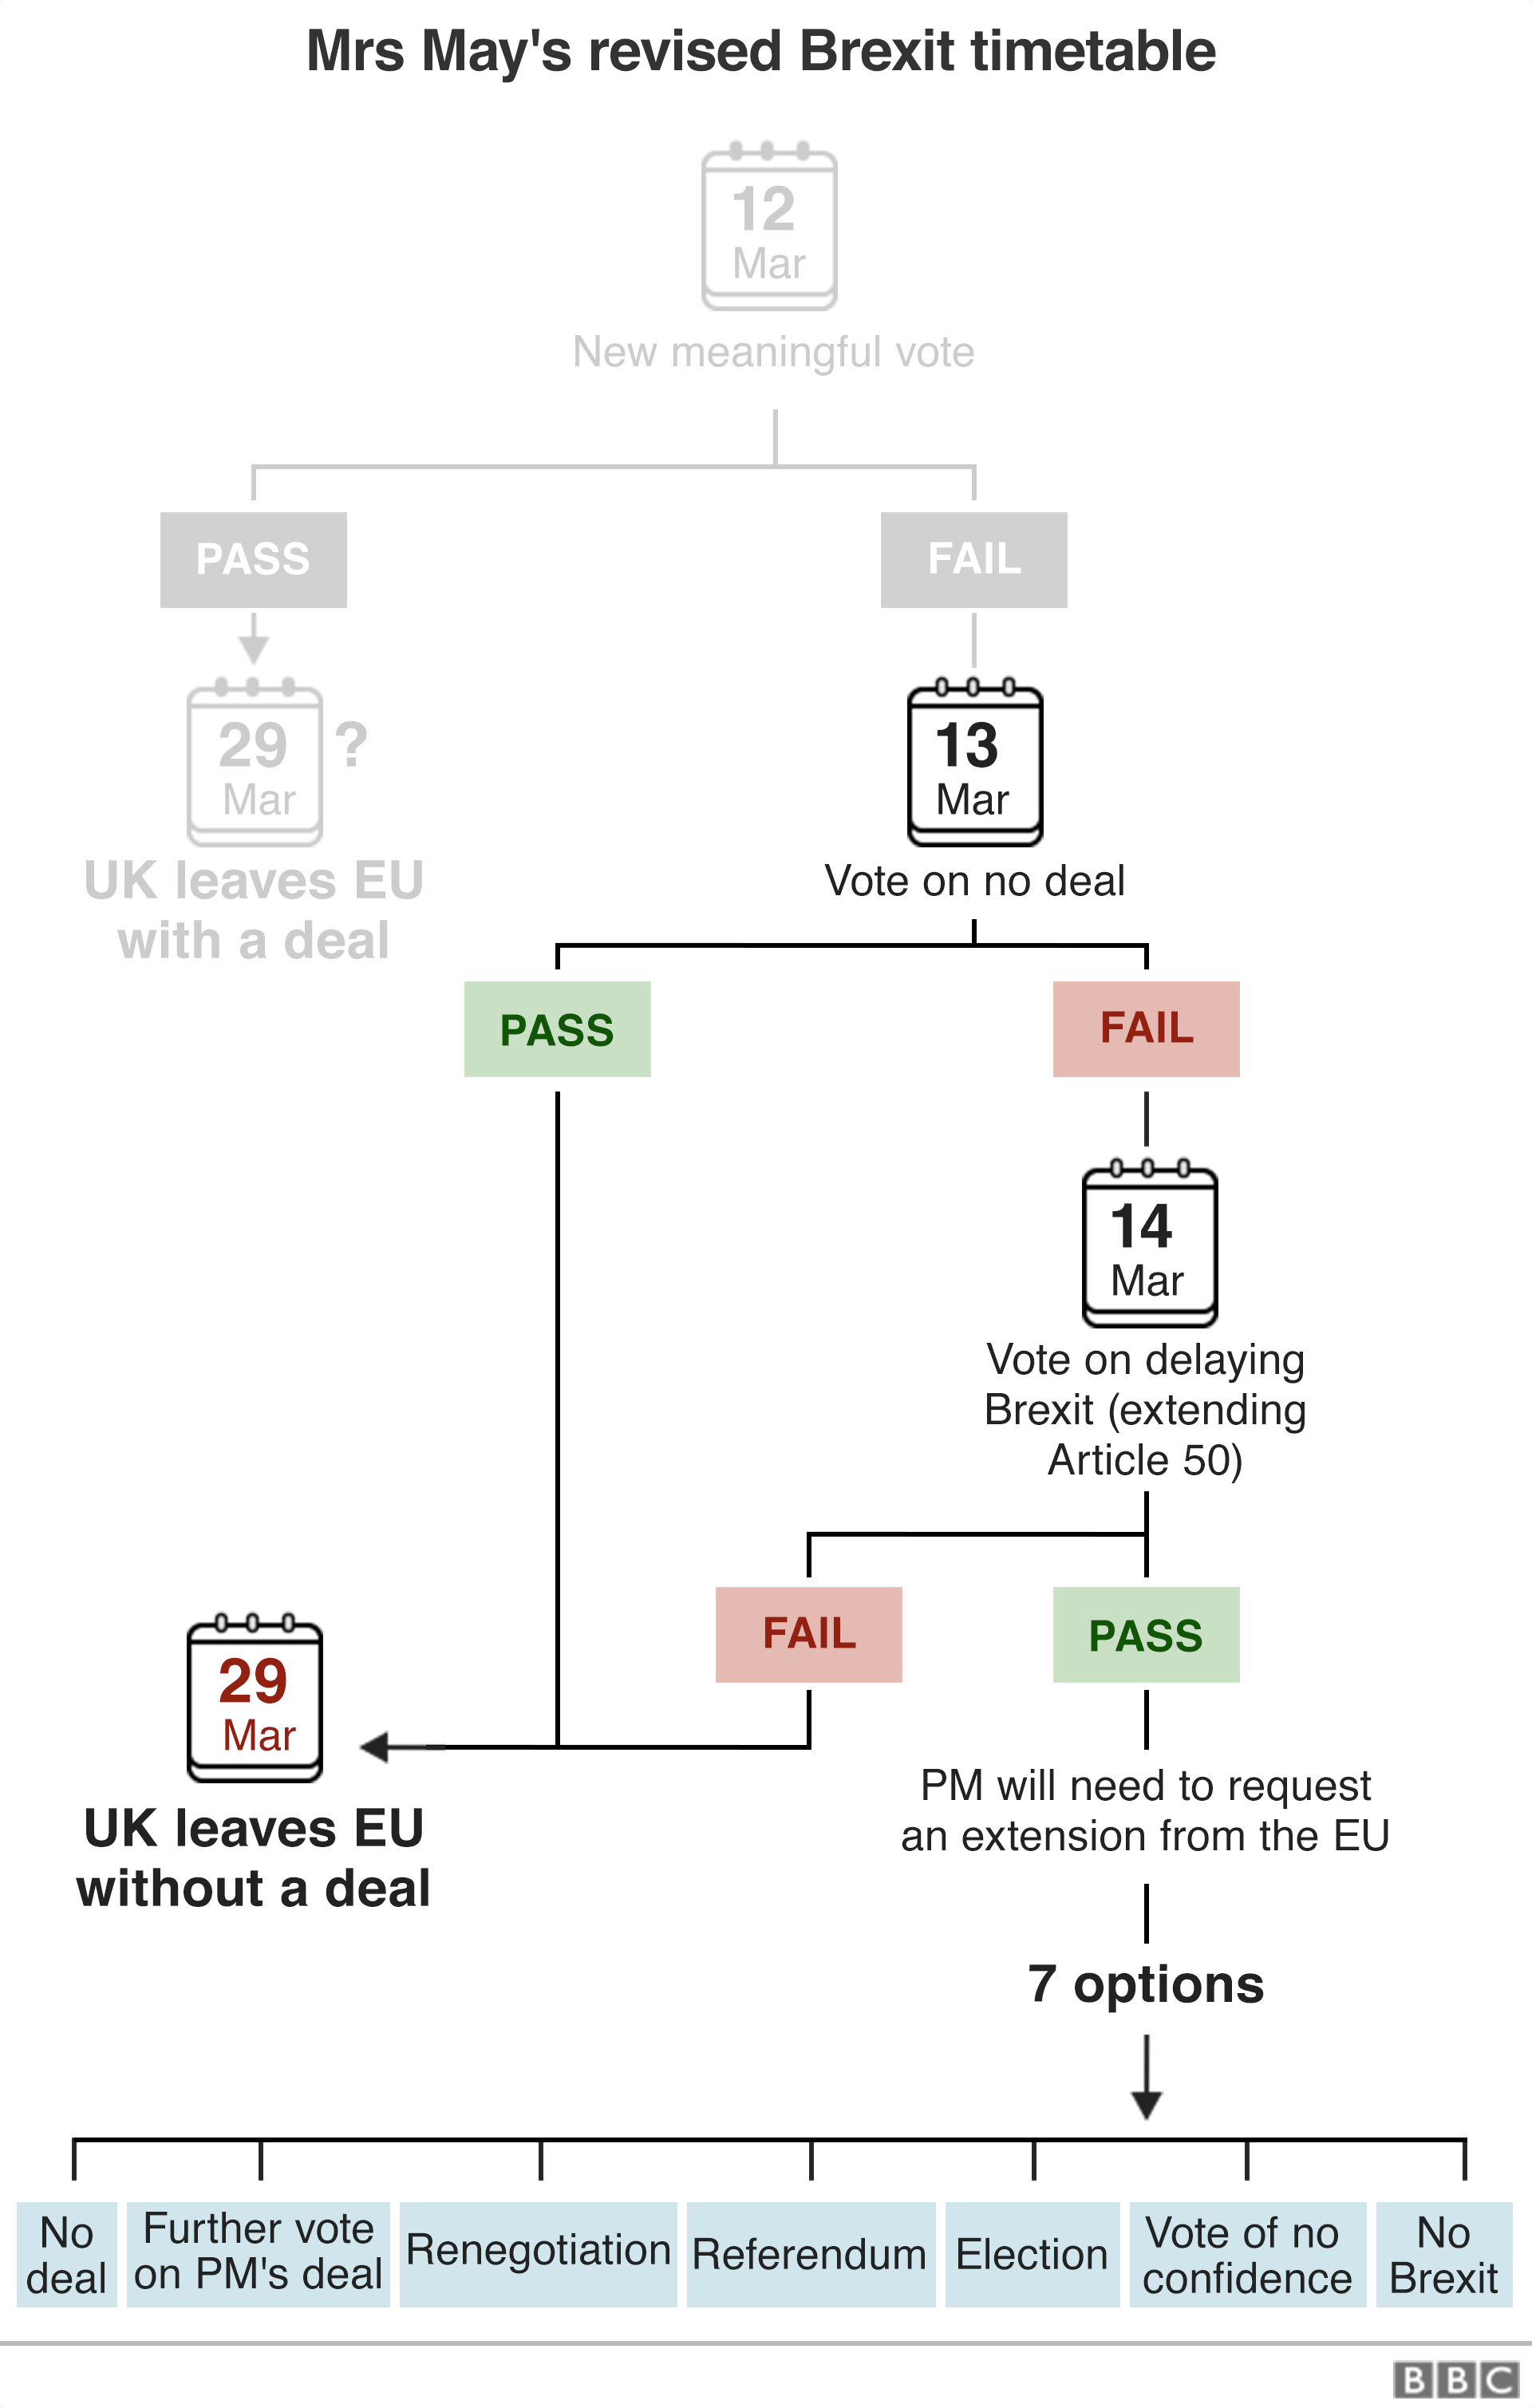 Brexit flowchart showing Mrs May's revised timetable. After losing another meaningful vote, the PM has promised a vote on no deal